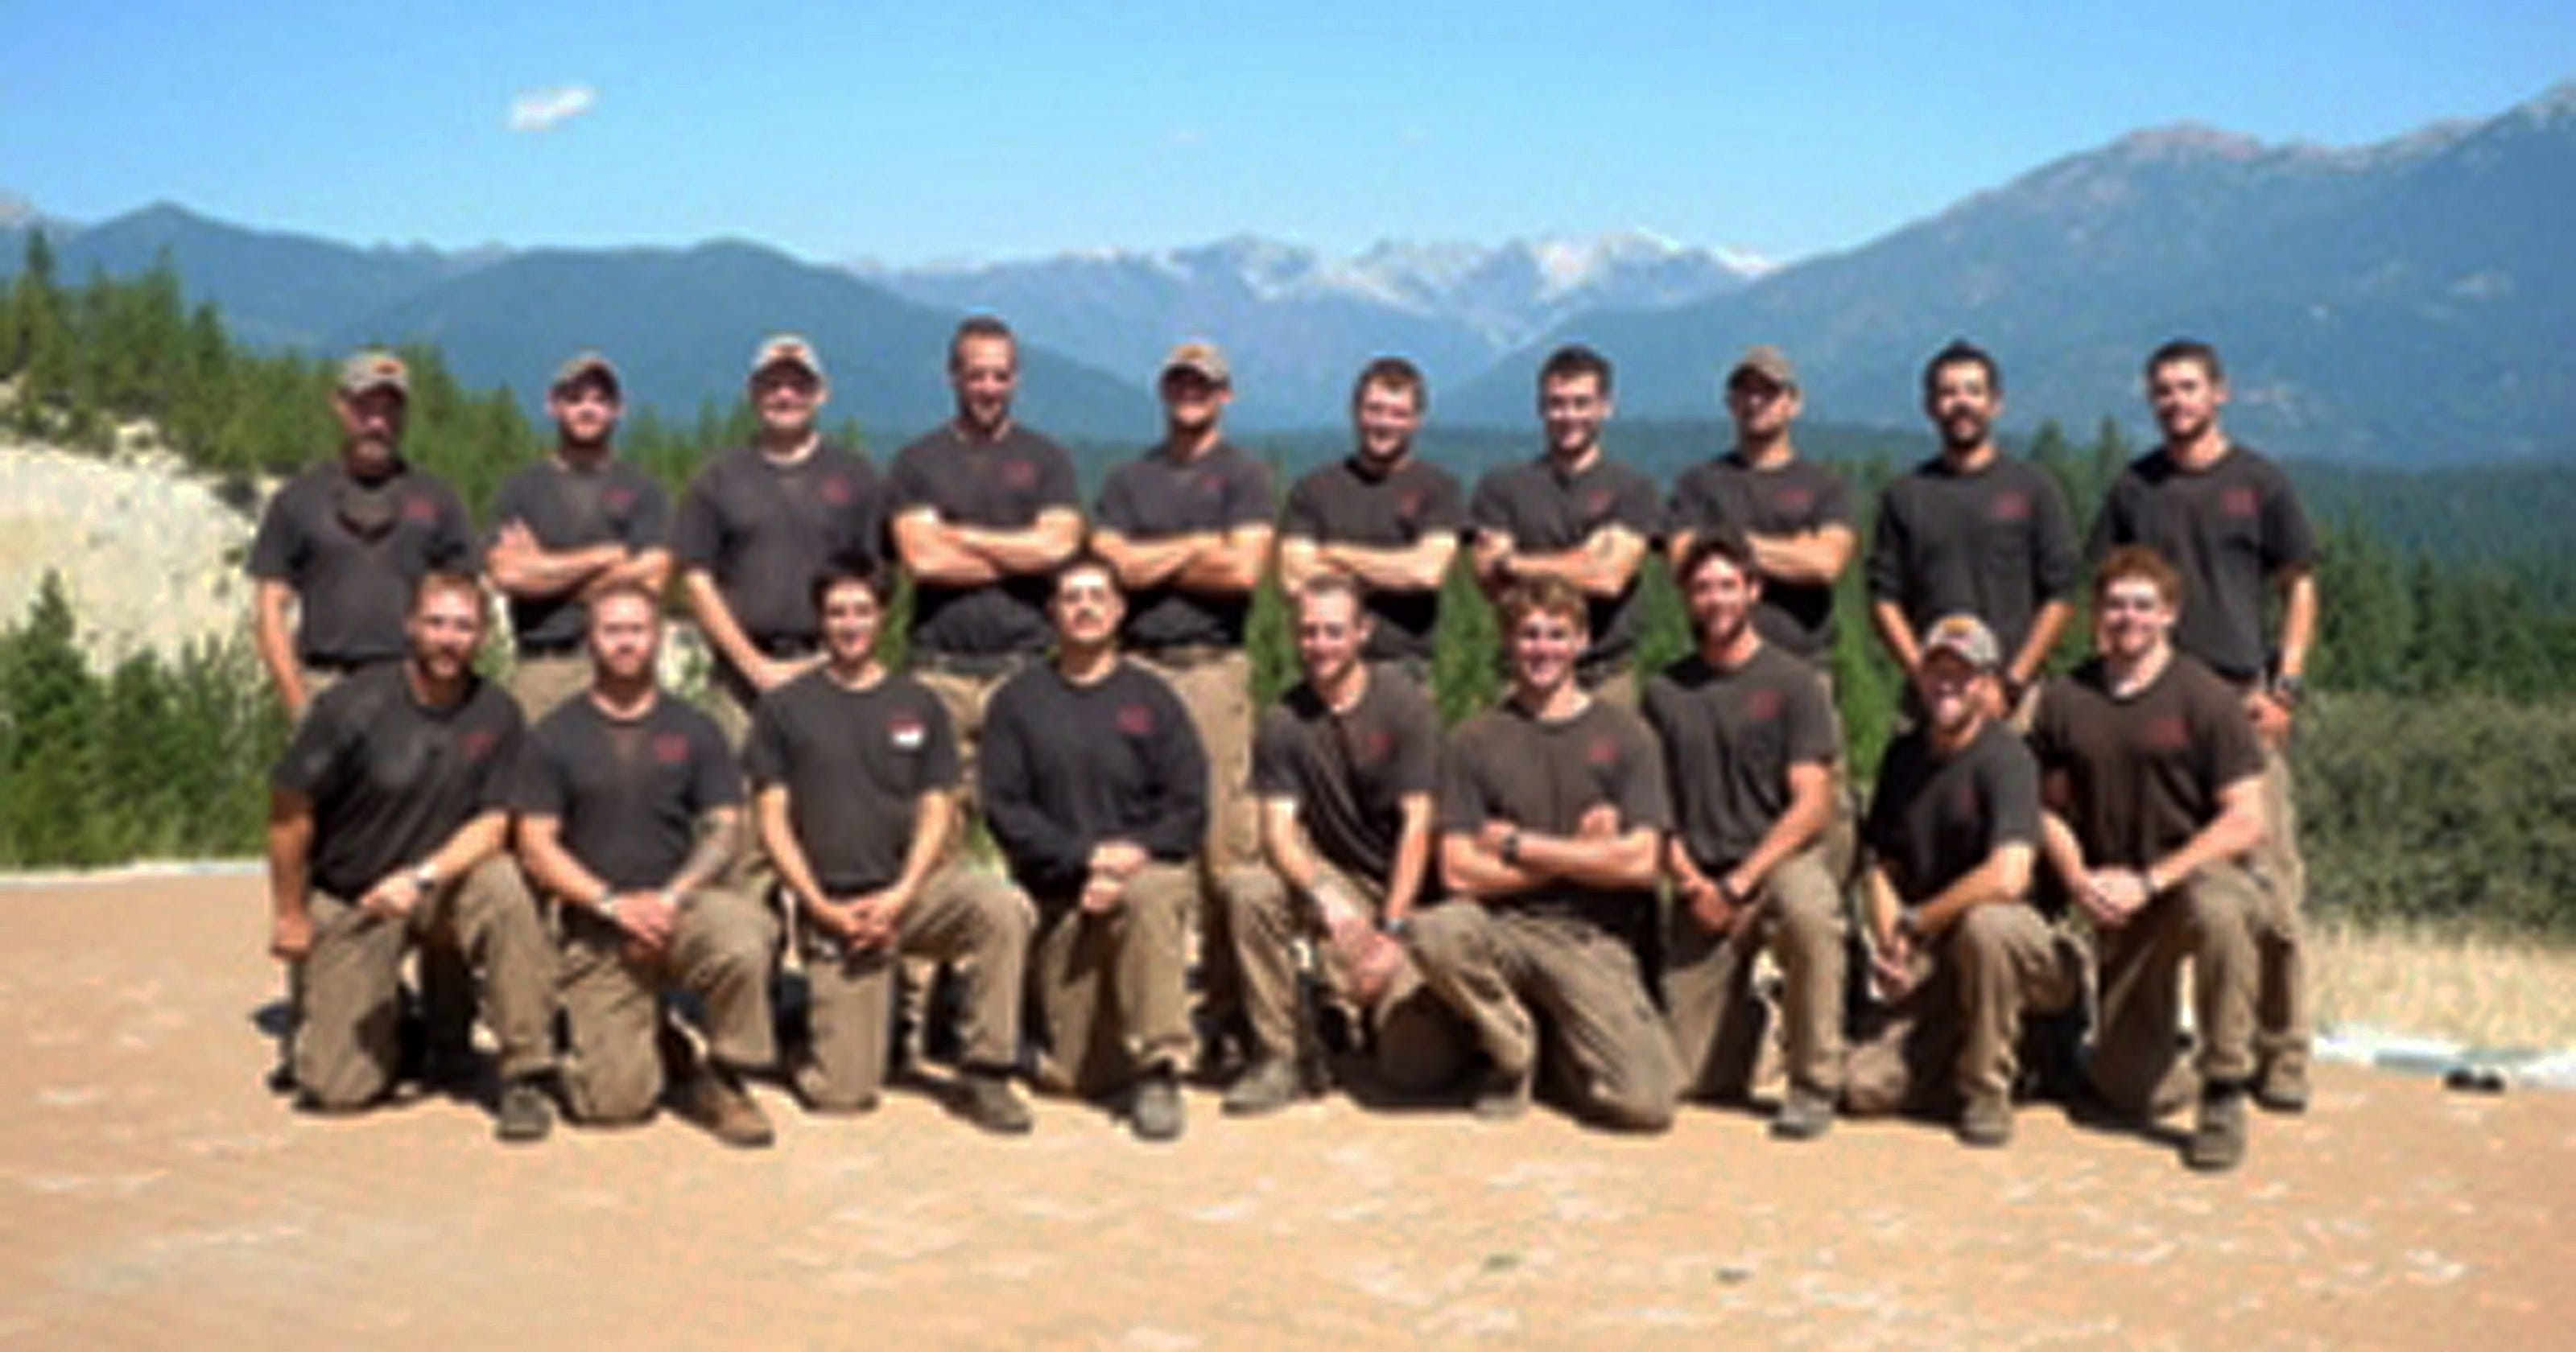 Hotshot teams are the elite of wildfire fighters